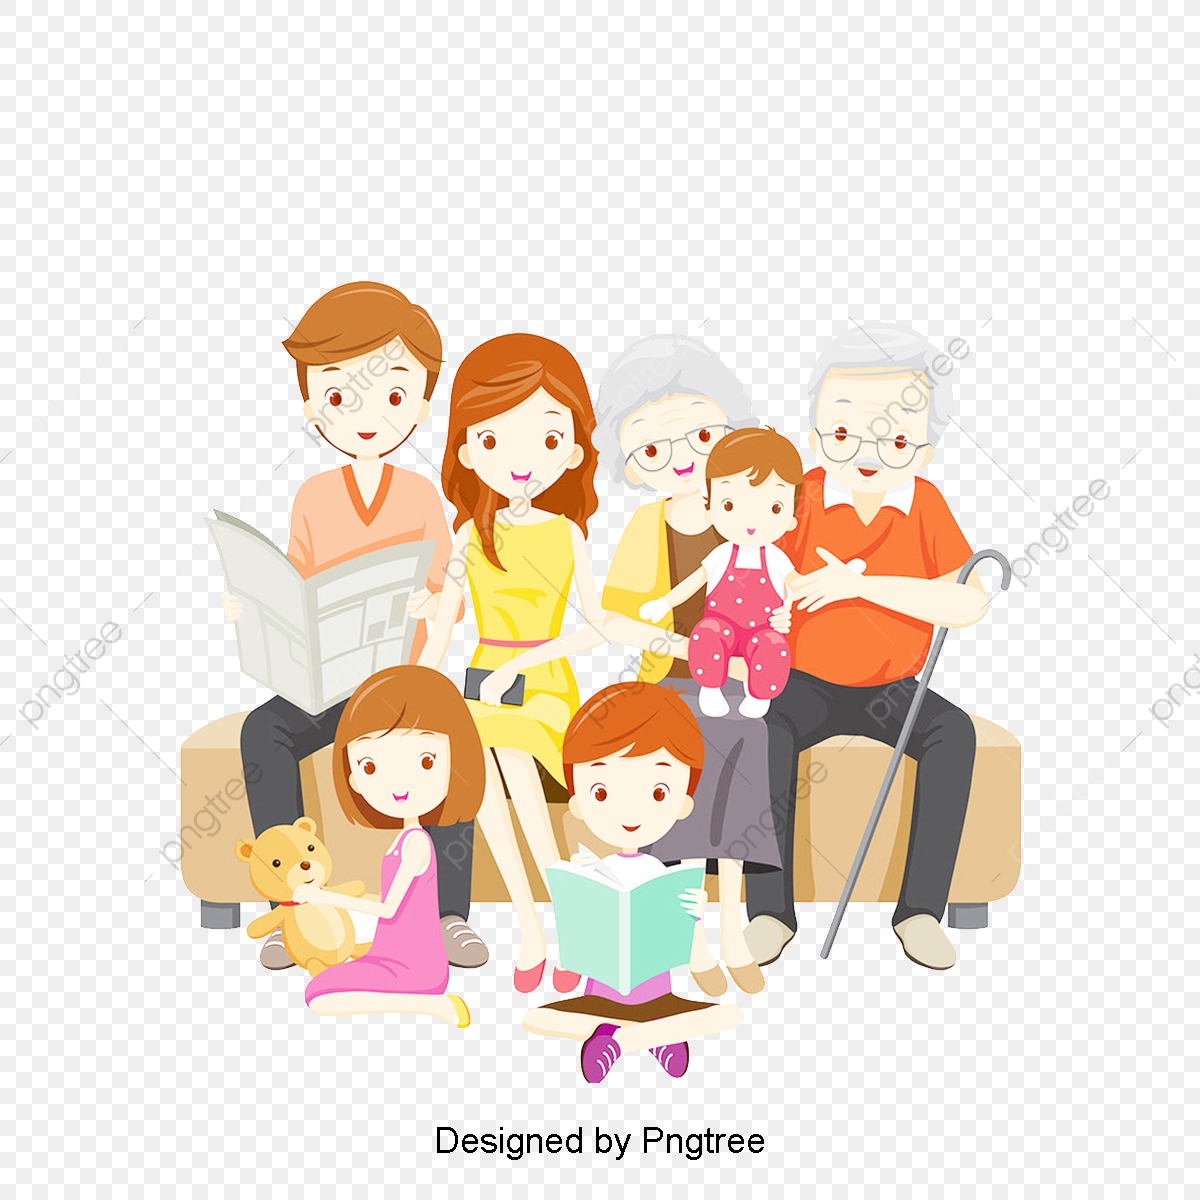 Cartoon Happy Family Design Pattern Cartoon Hand Painted Happiness Png Transparent Clipart Image And Psd File For Free Download